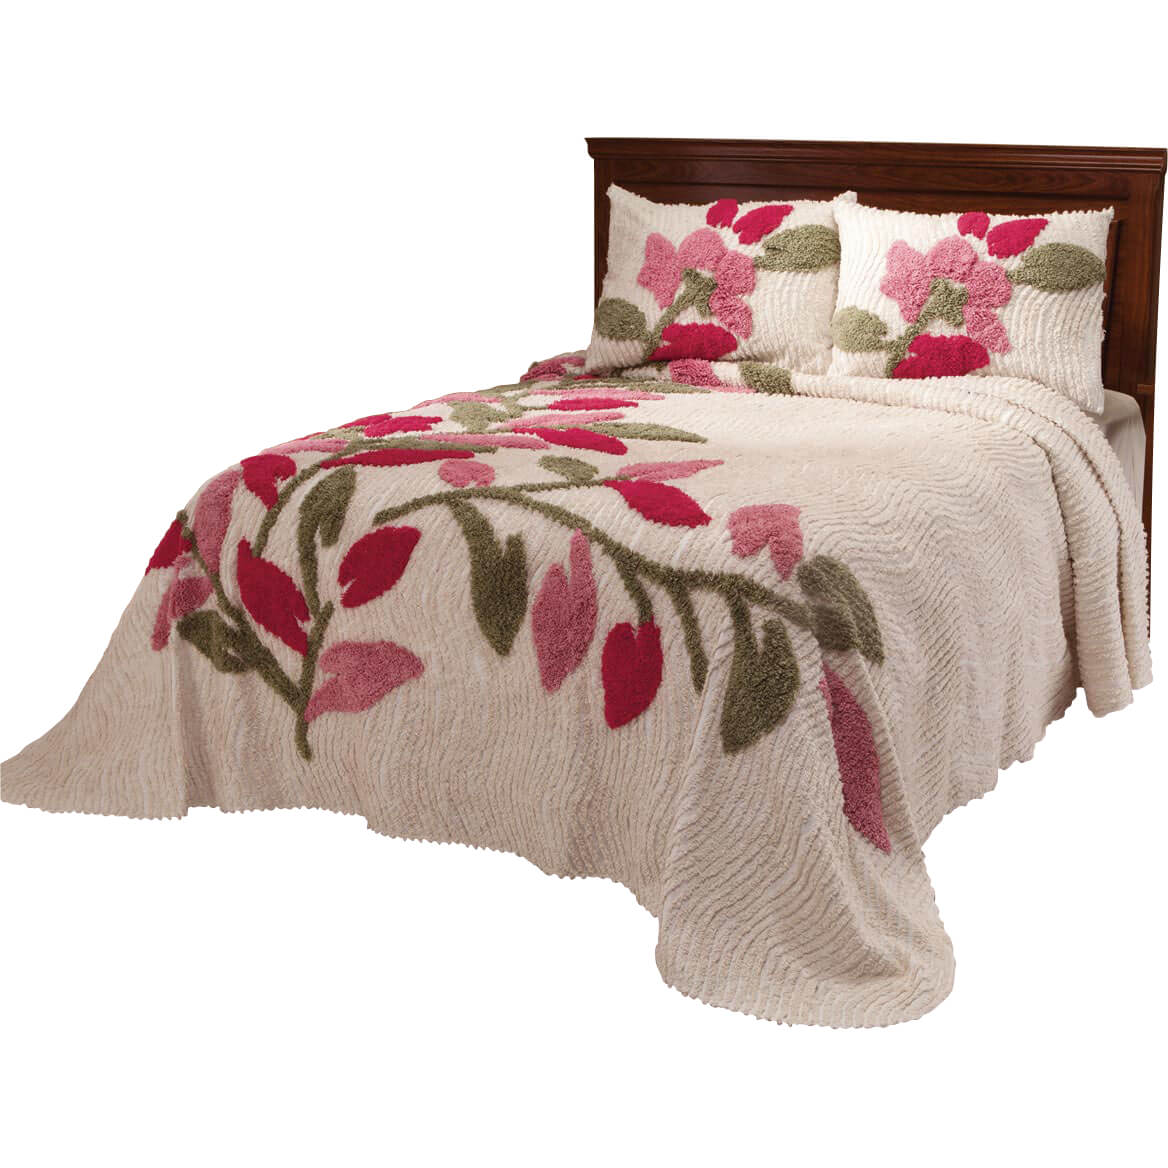 The Marilyn Chenille Bedspread by OakRidgeTM